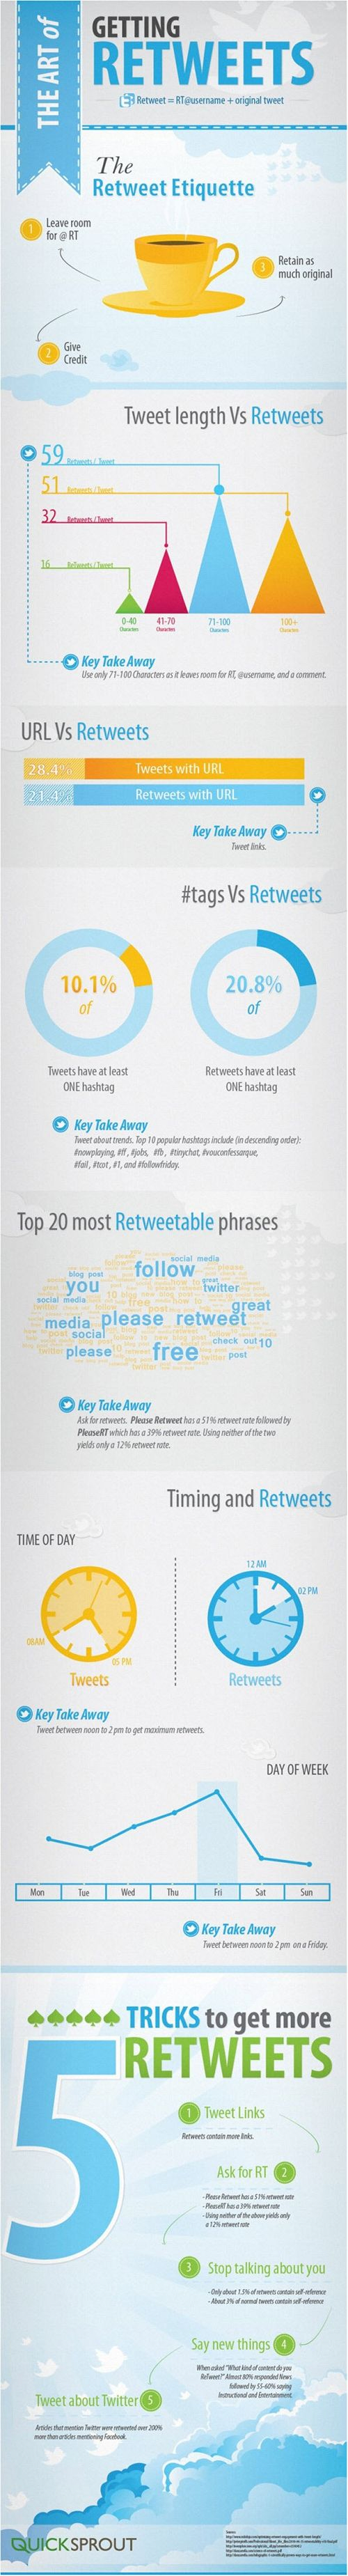 plus retweets twitter Please ReTweet : 10 astuces pour exploser les ReTweets sur Twitter